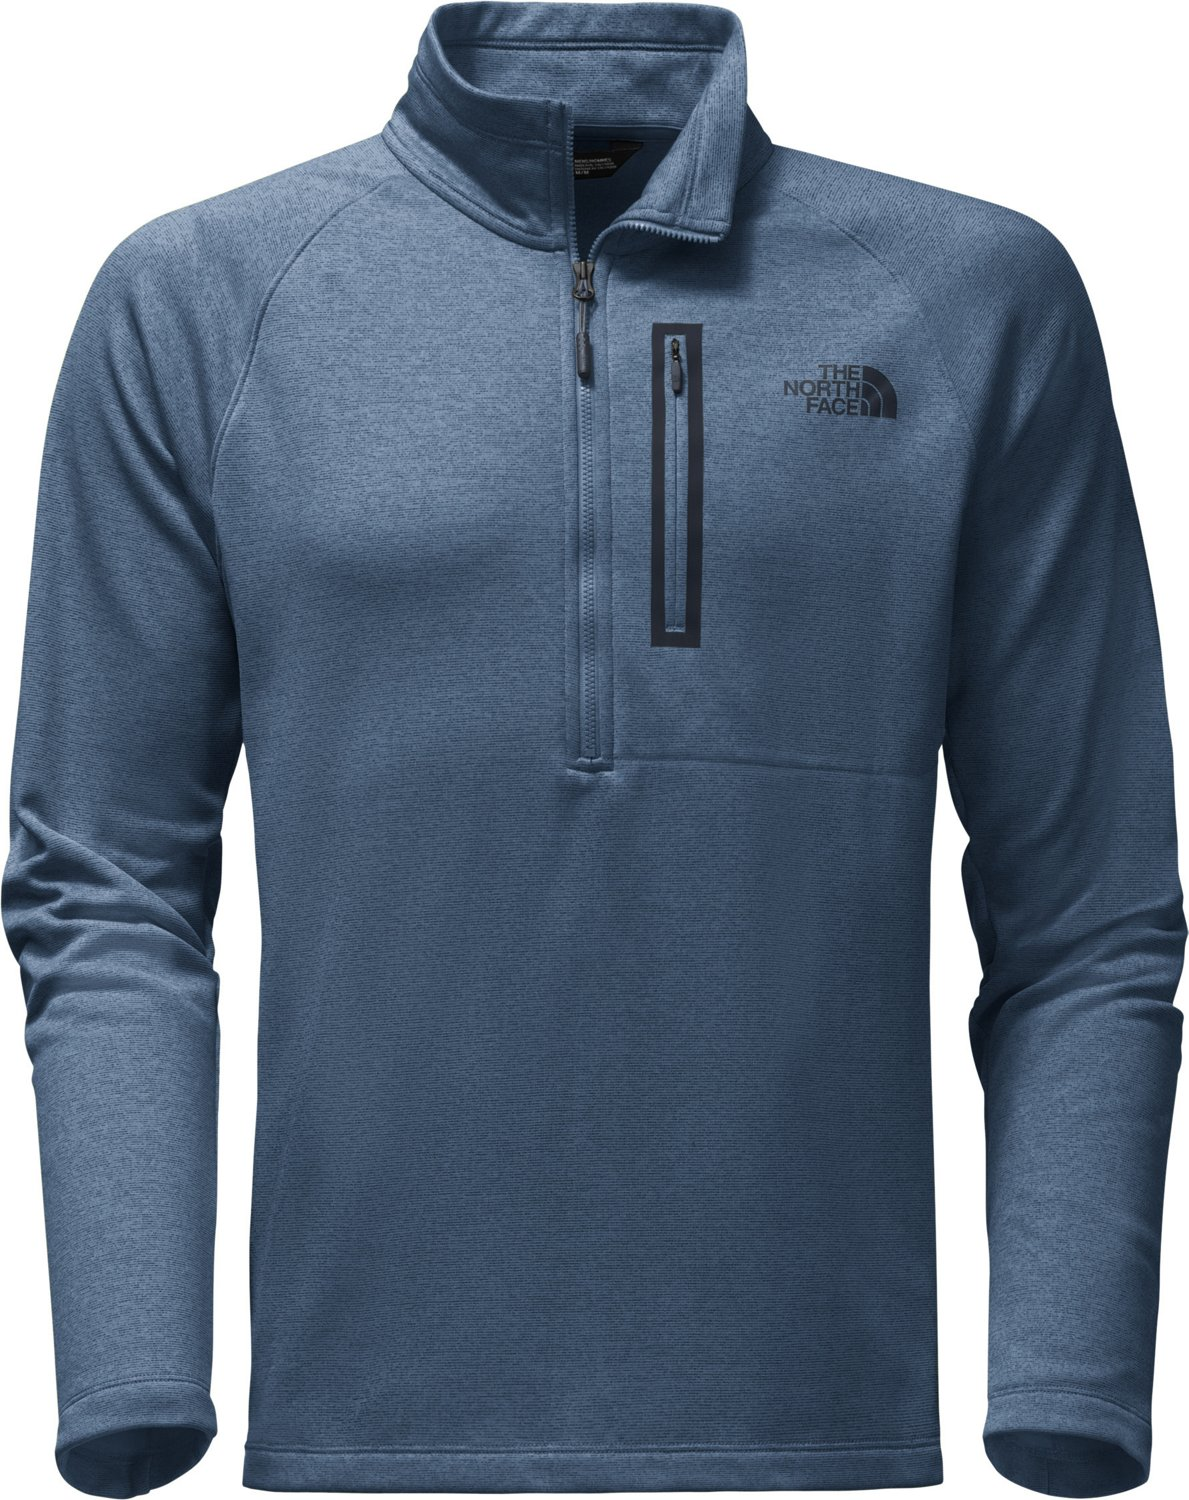 19131759 Display product reviews for The North Face Men's Canyonlands 1/2 Zip  Pullover